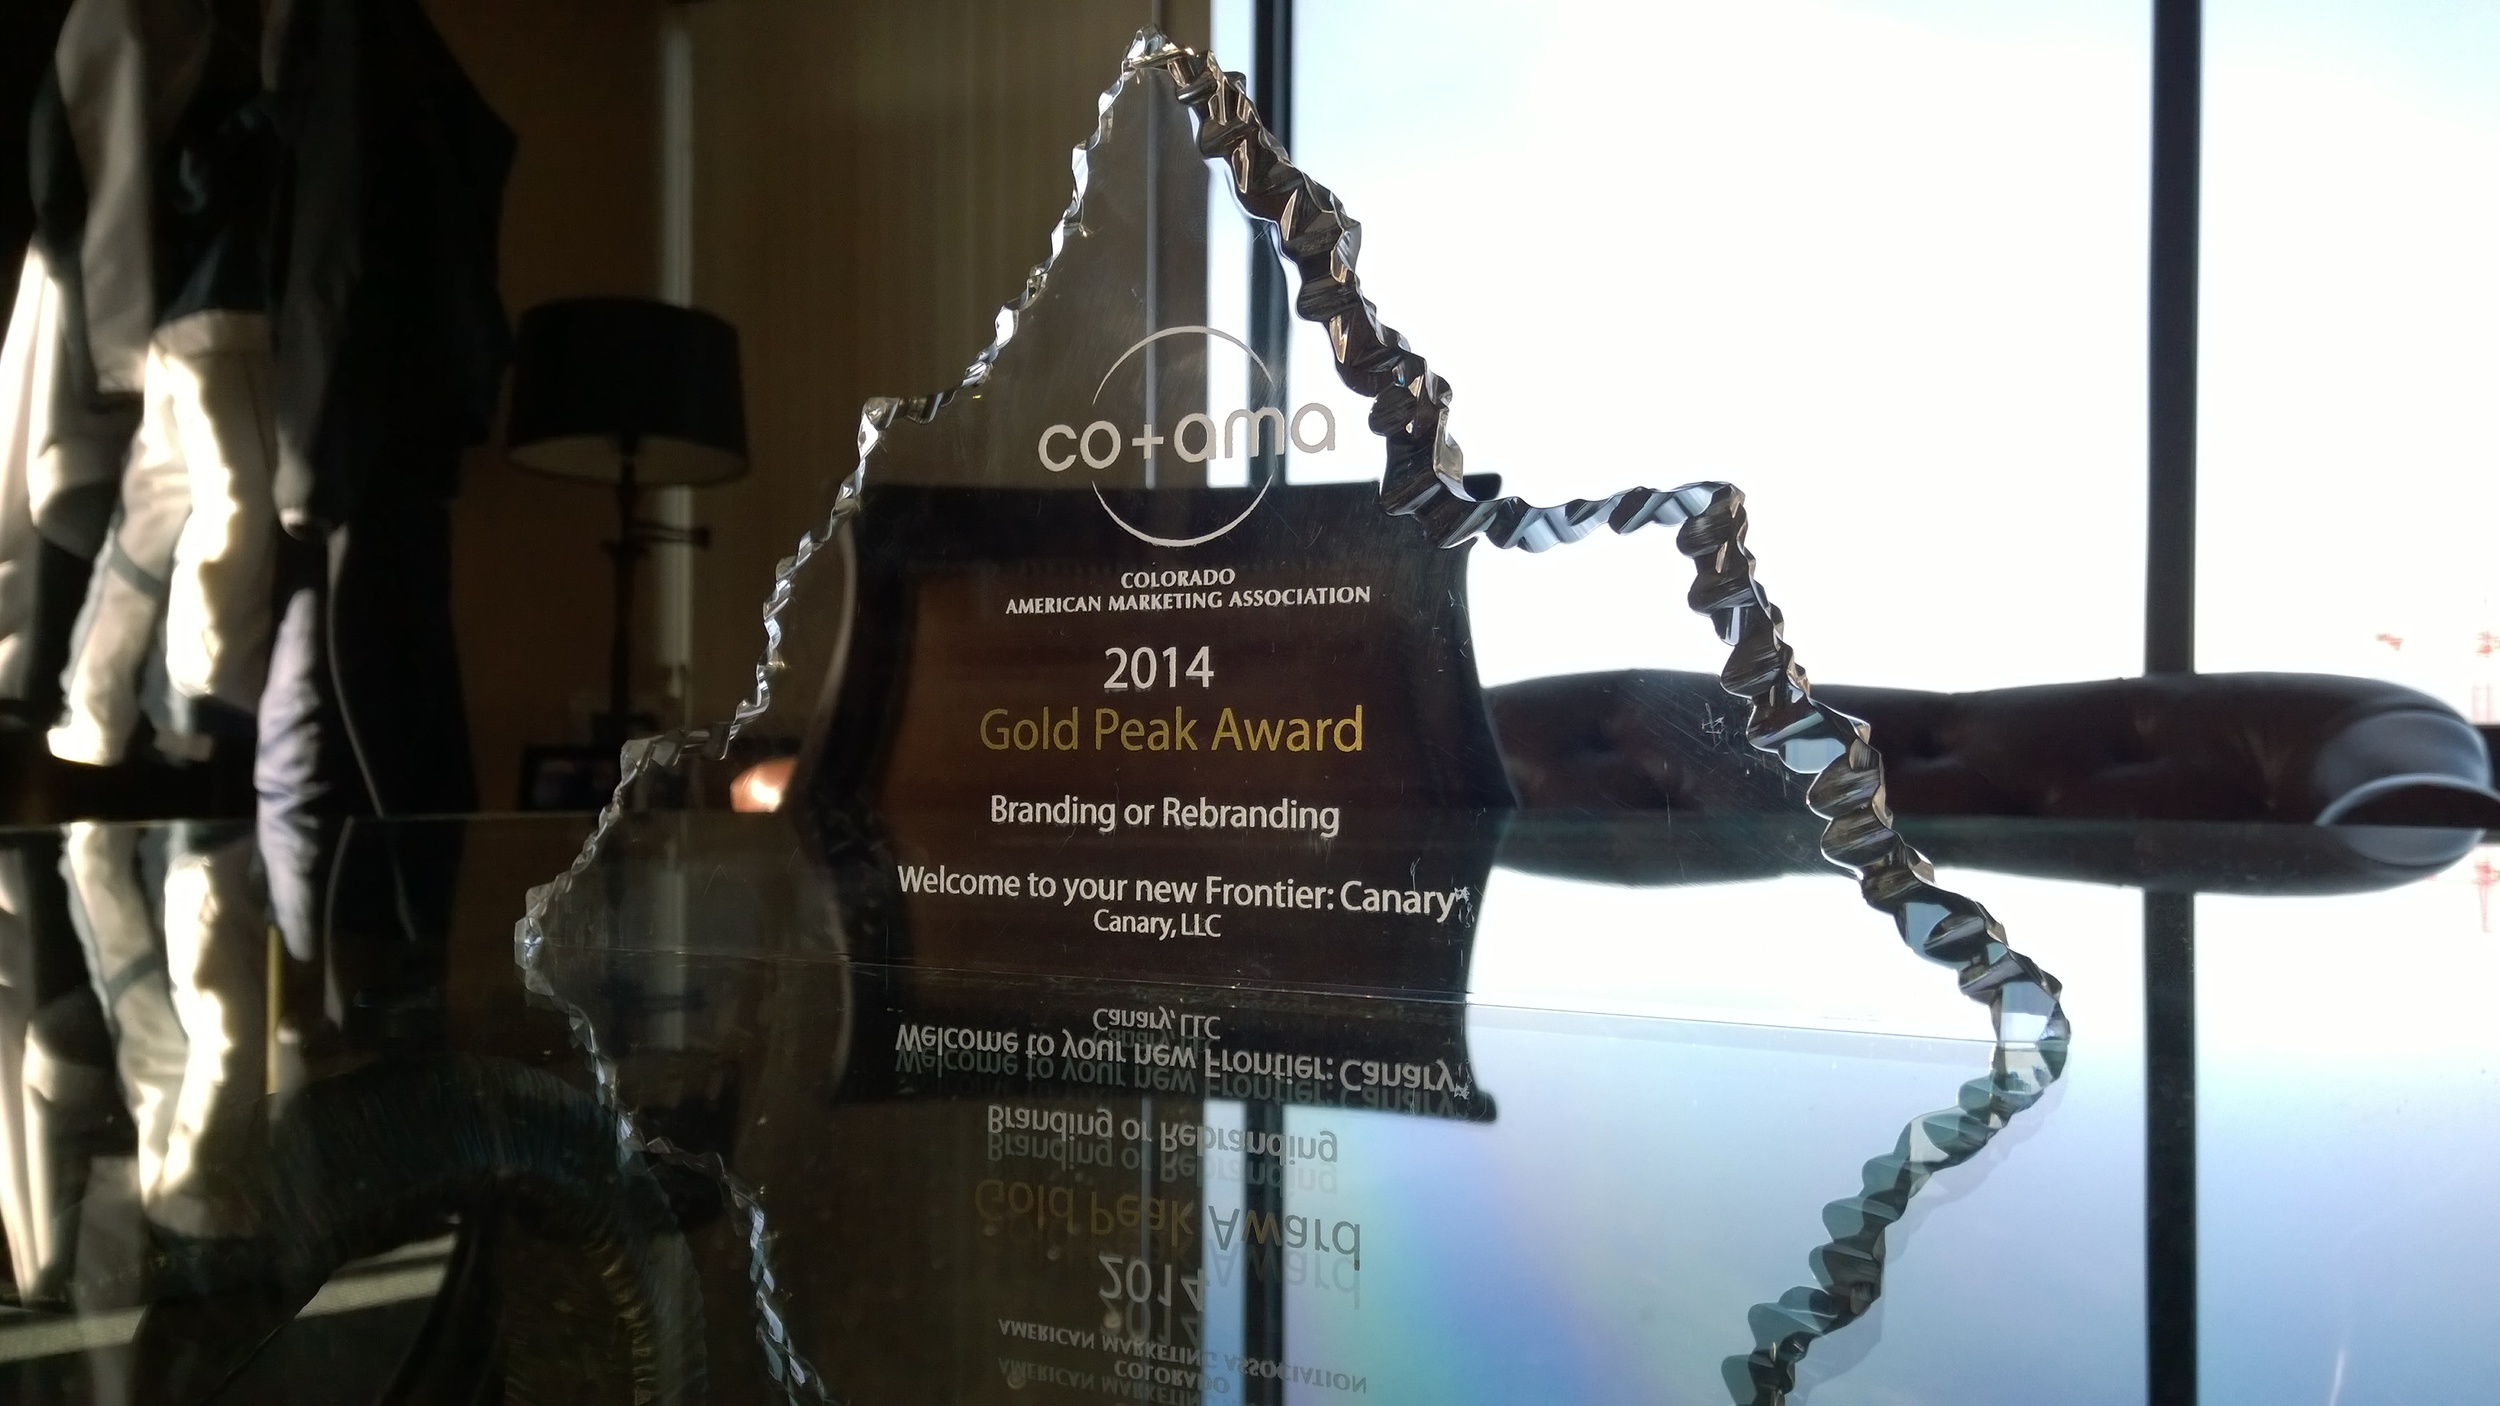 CO+AMA 2014 Gold Peak Award for excellence in re-branding.